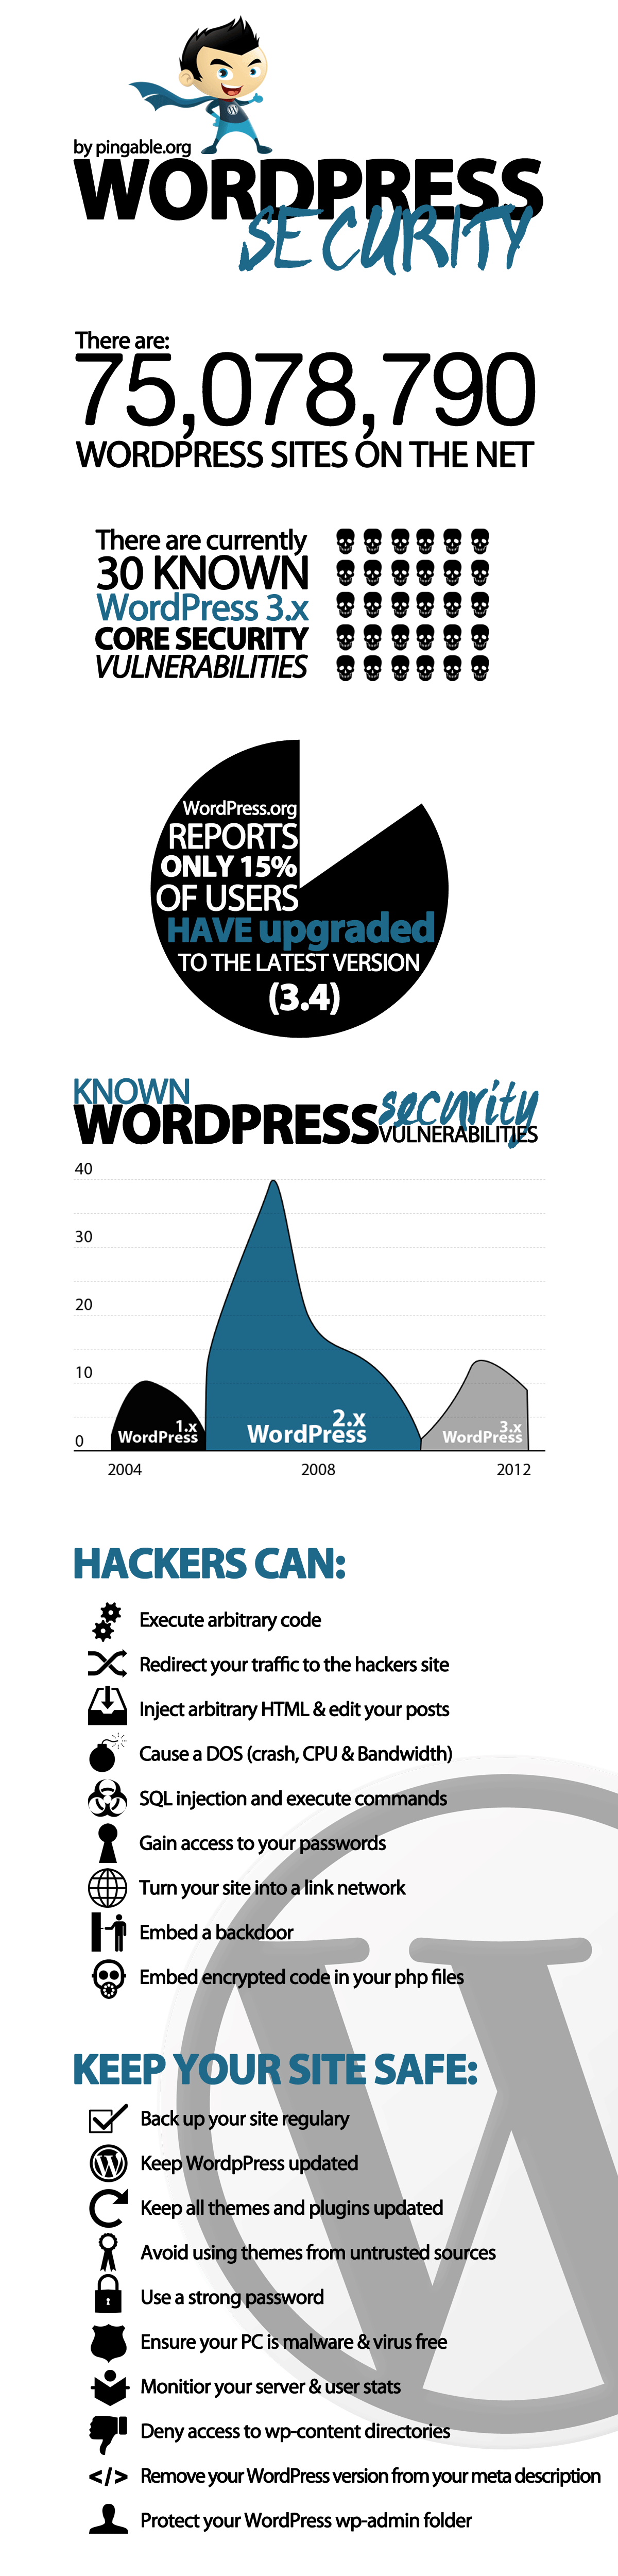 WordPress Security Infographic by Pingable